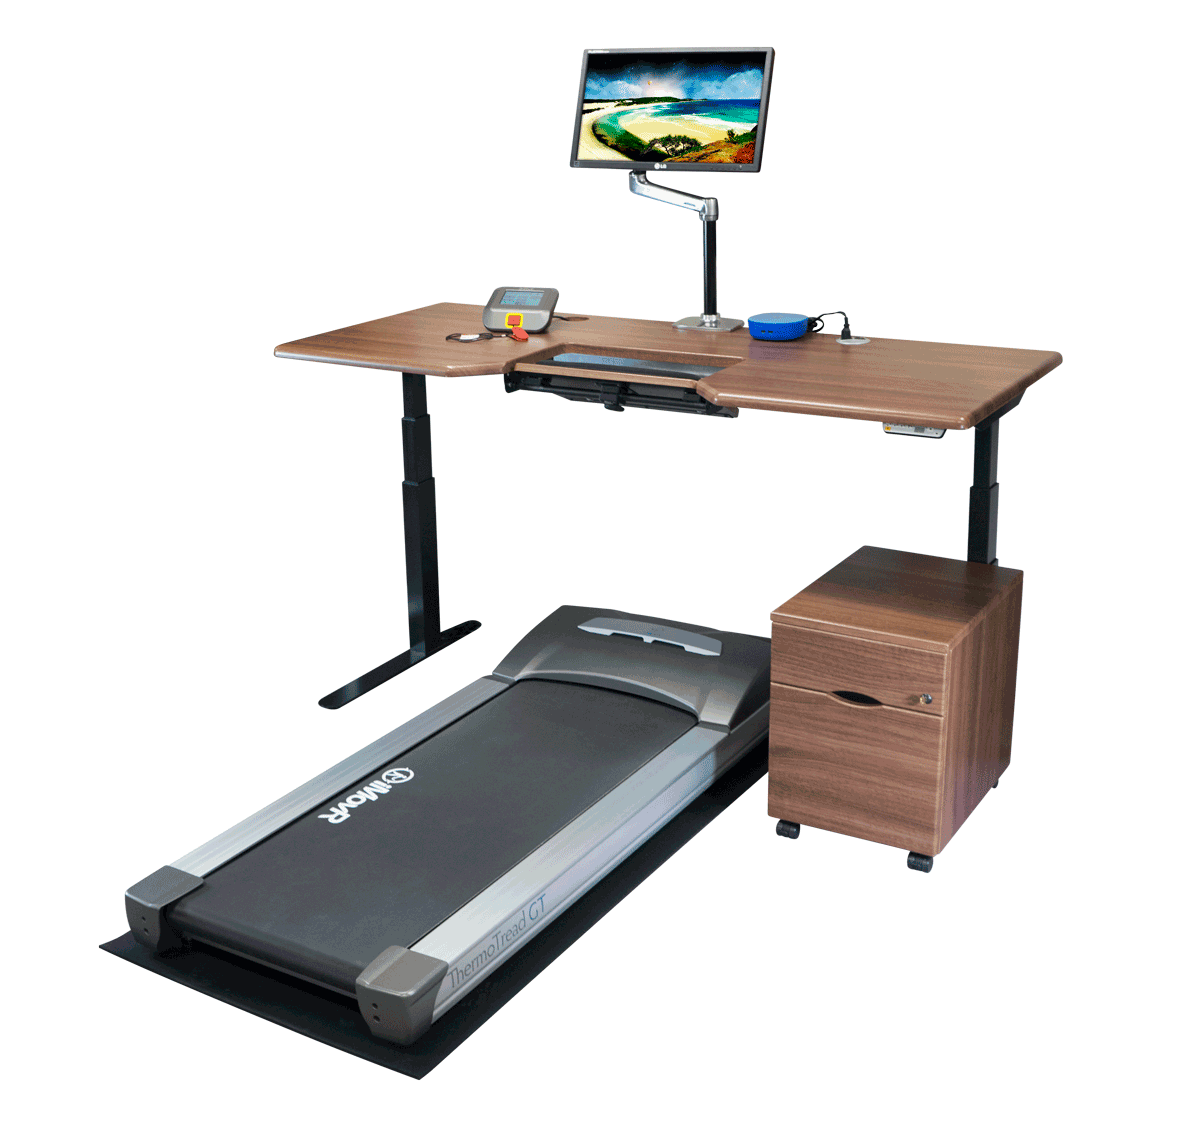 under to equipment titan best choosing a treadmill buyer painless desk exercise s the buying reviews guide office